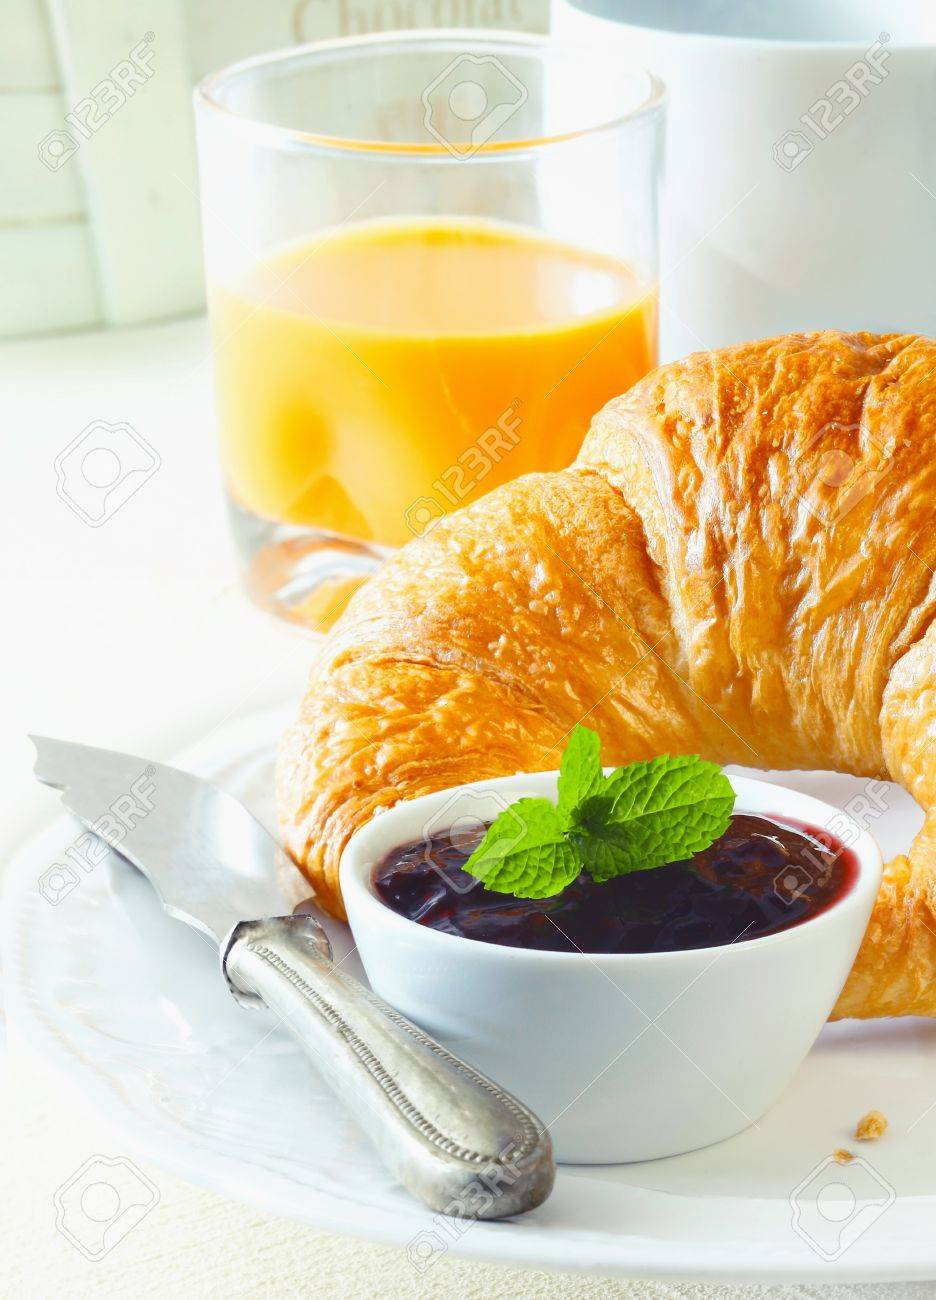 Continental Breakfast Images